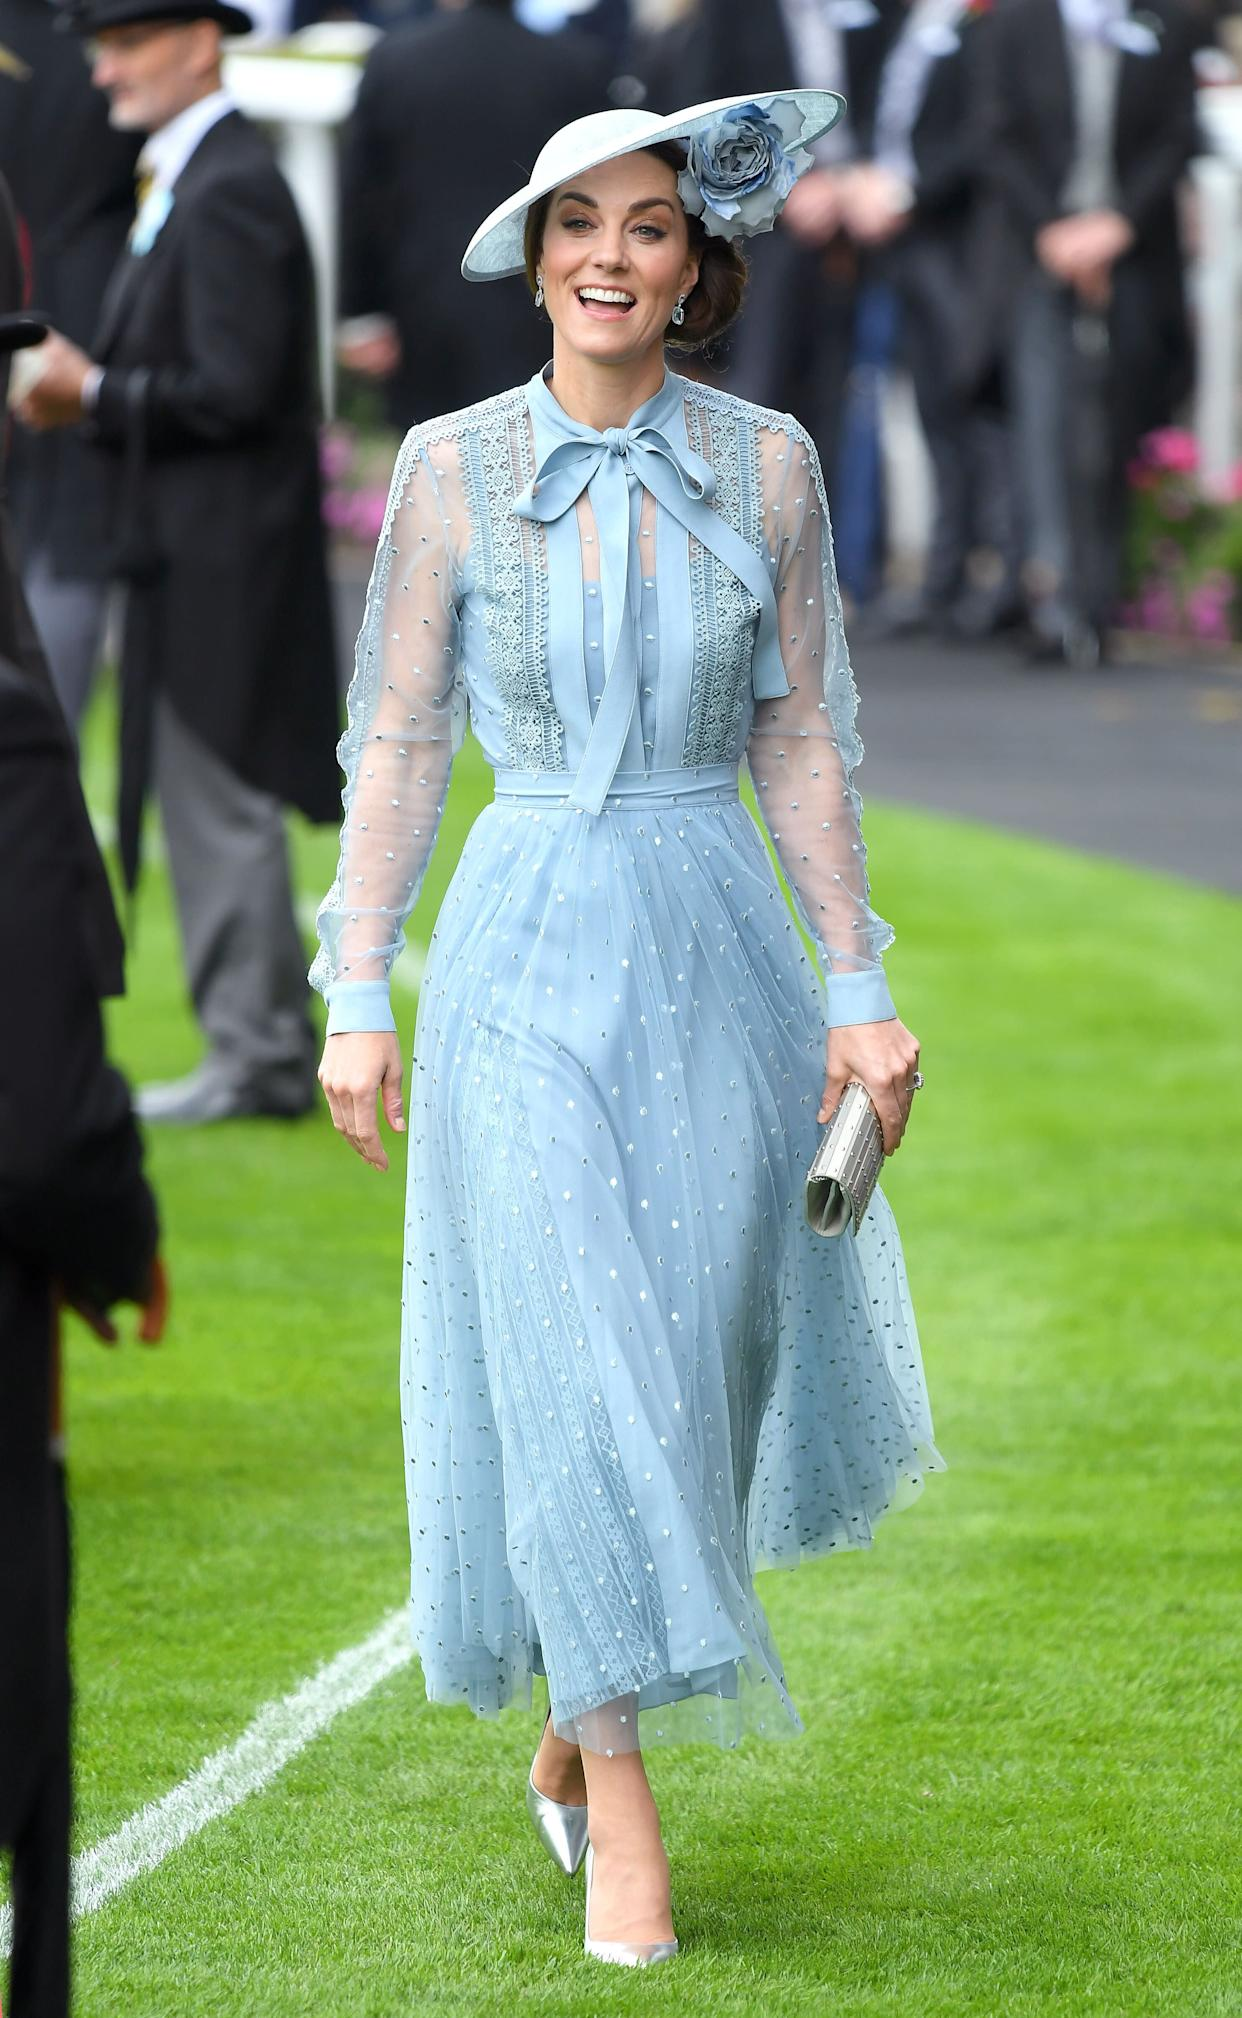 The Duchess of Cambridge stole the show. (Photo: Karwai Tang via Getty Images)